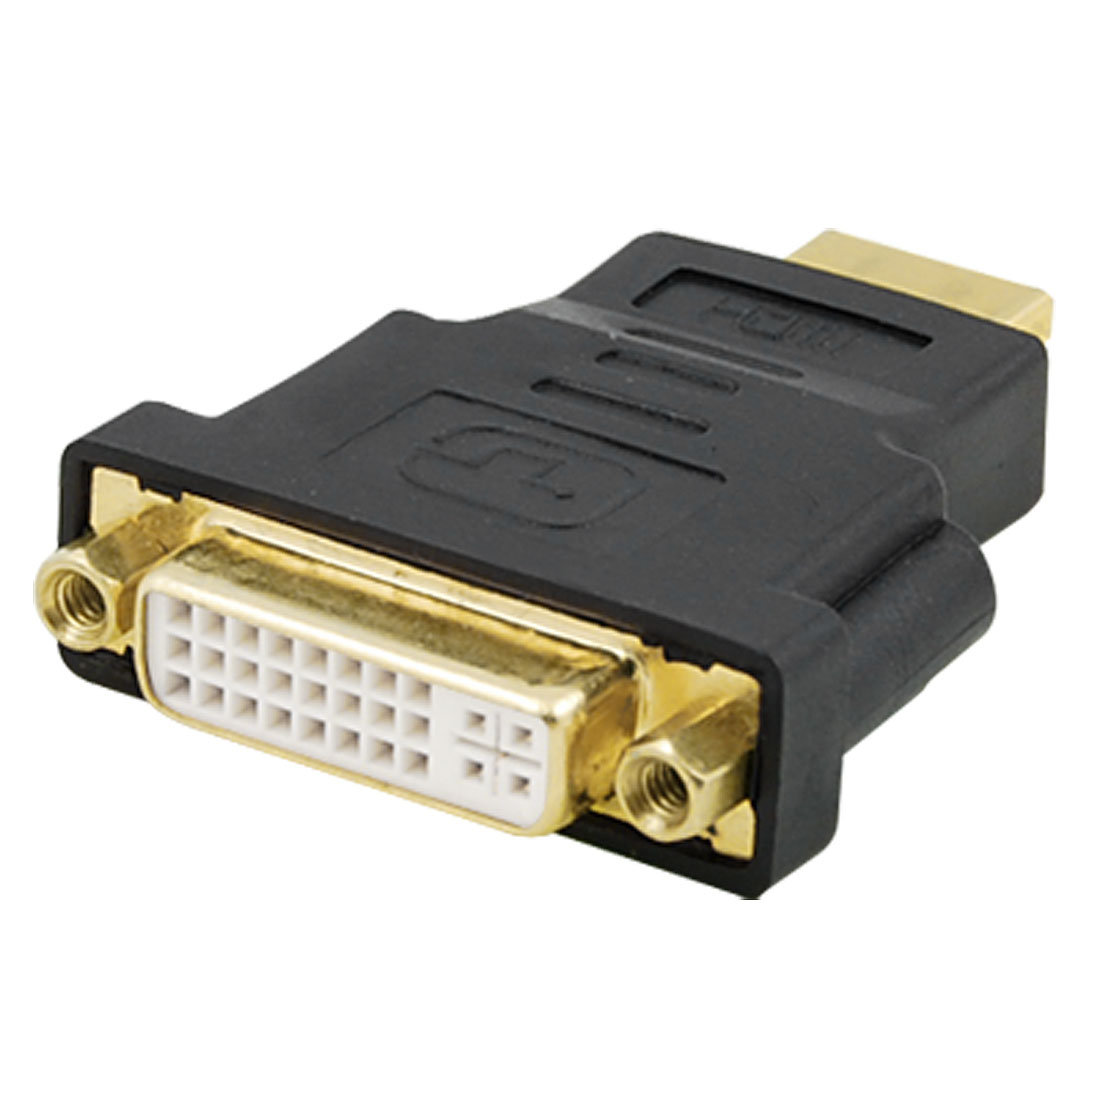 Dual Link DVI-I Female to HDMI Male Connector Converter Adapter